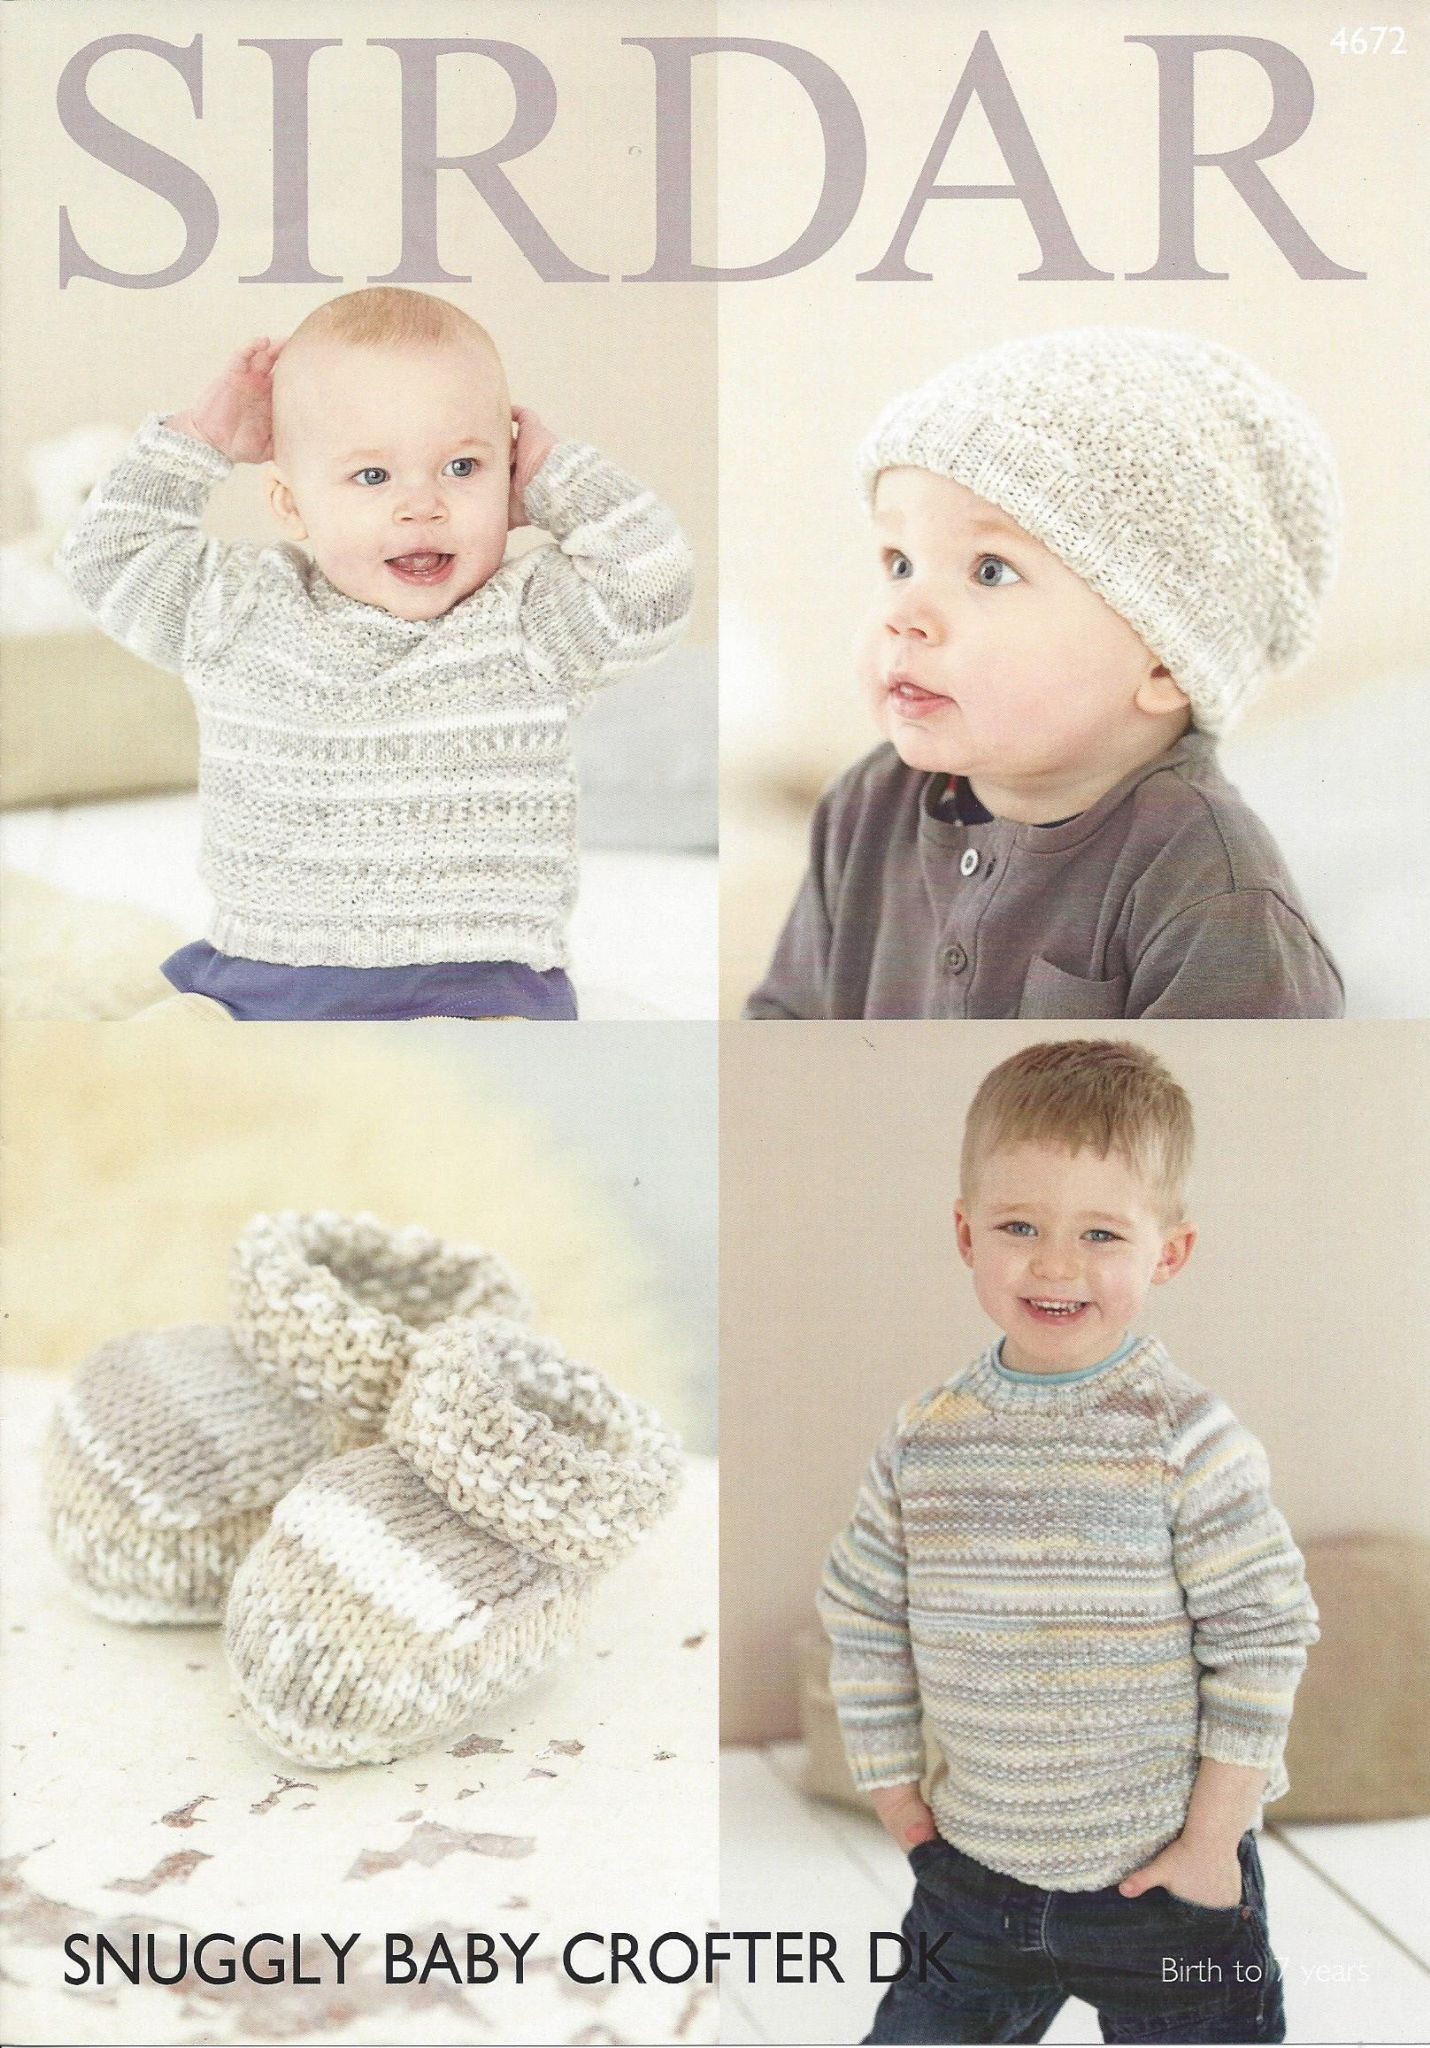 Sirdar Snuggly Baby Crofter Dk 4672 Sweater Hat